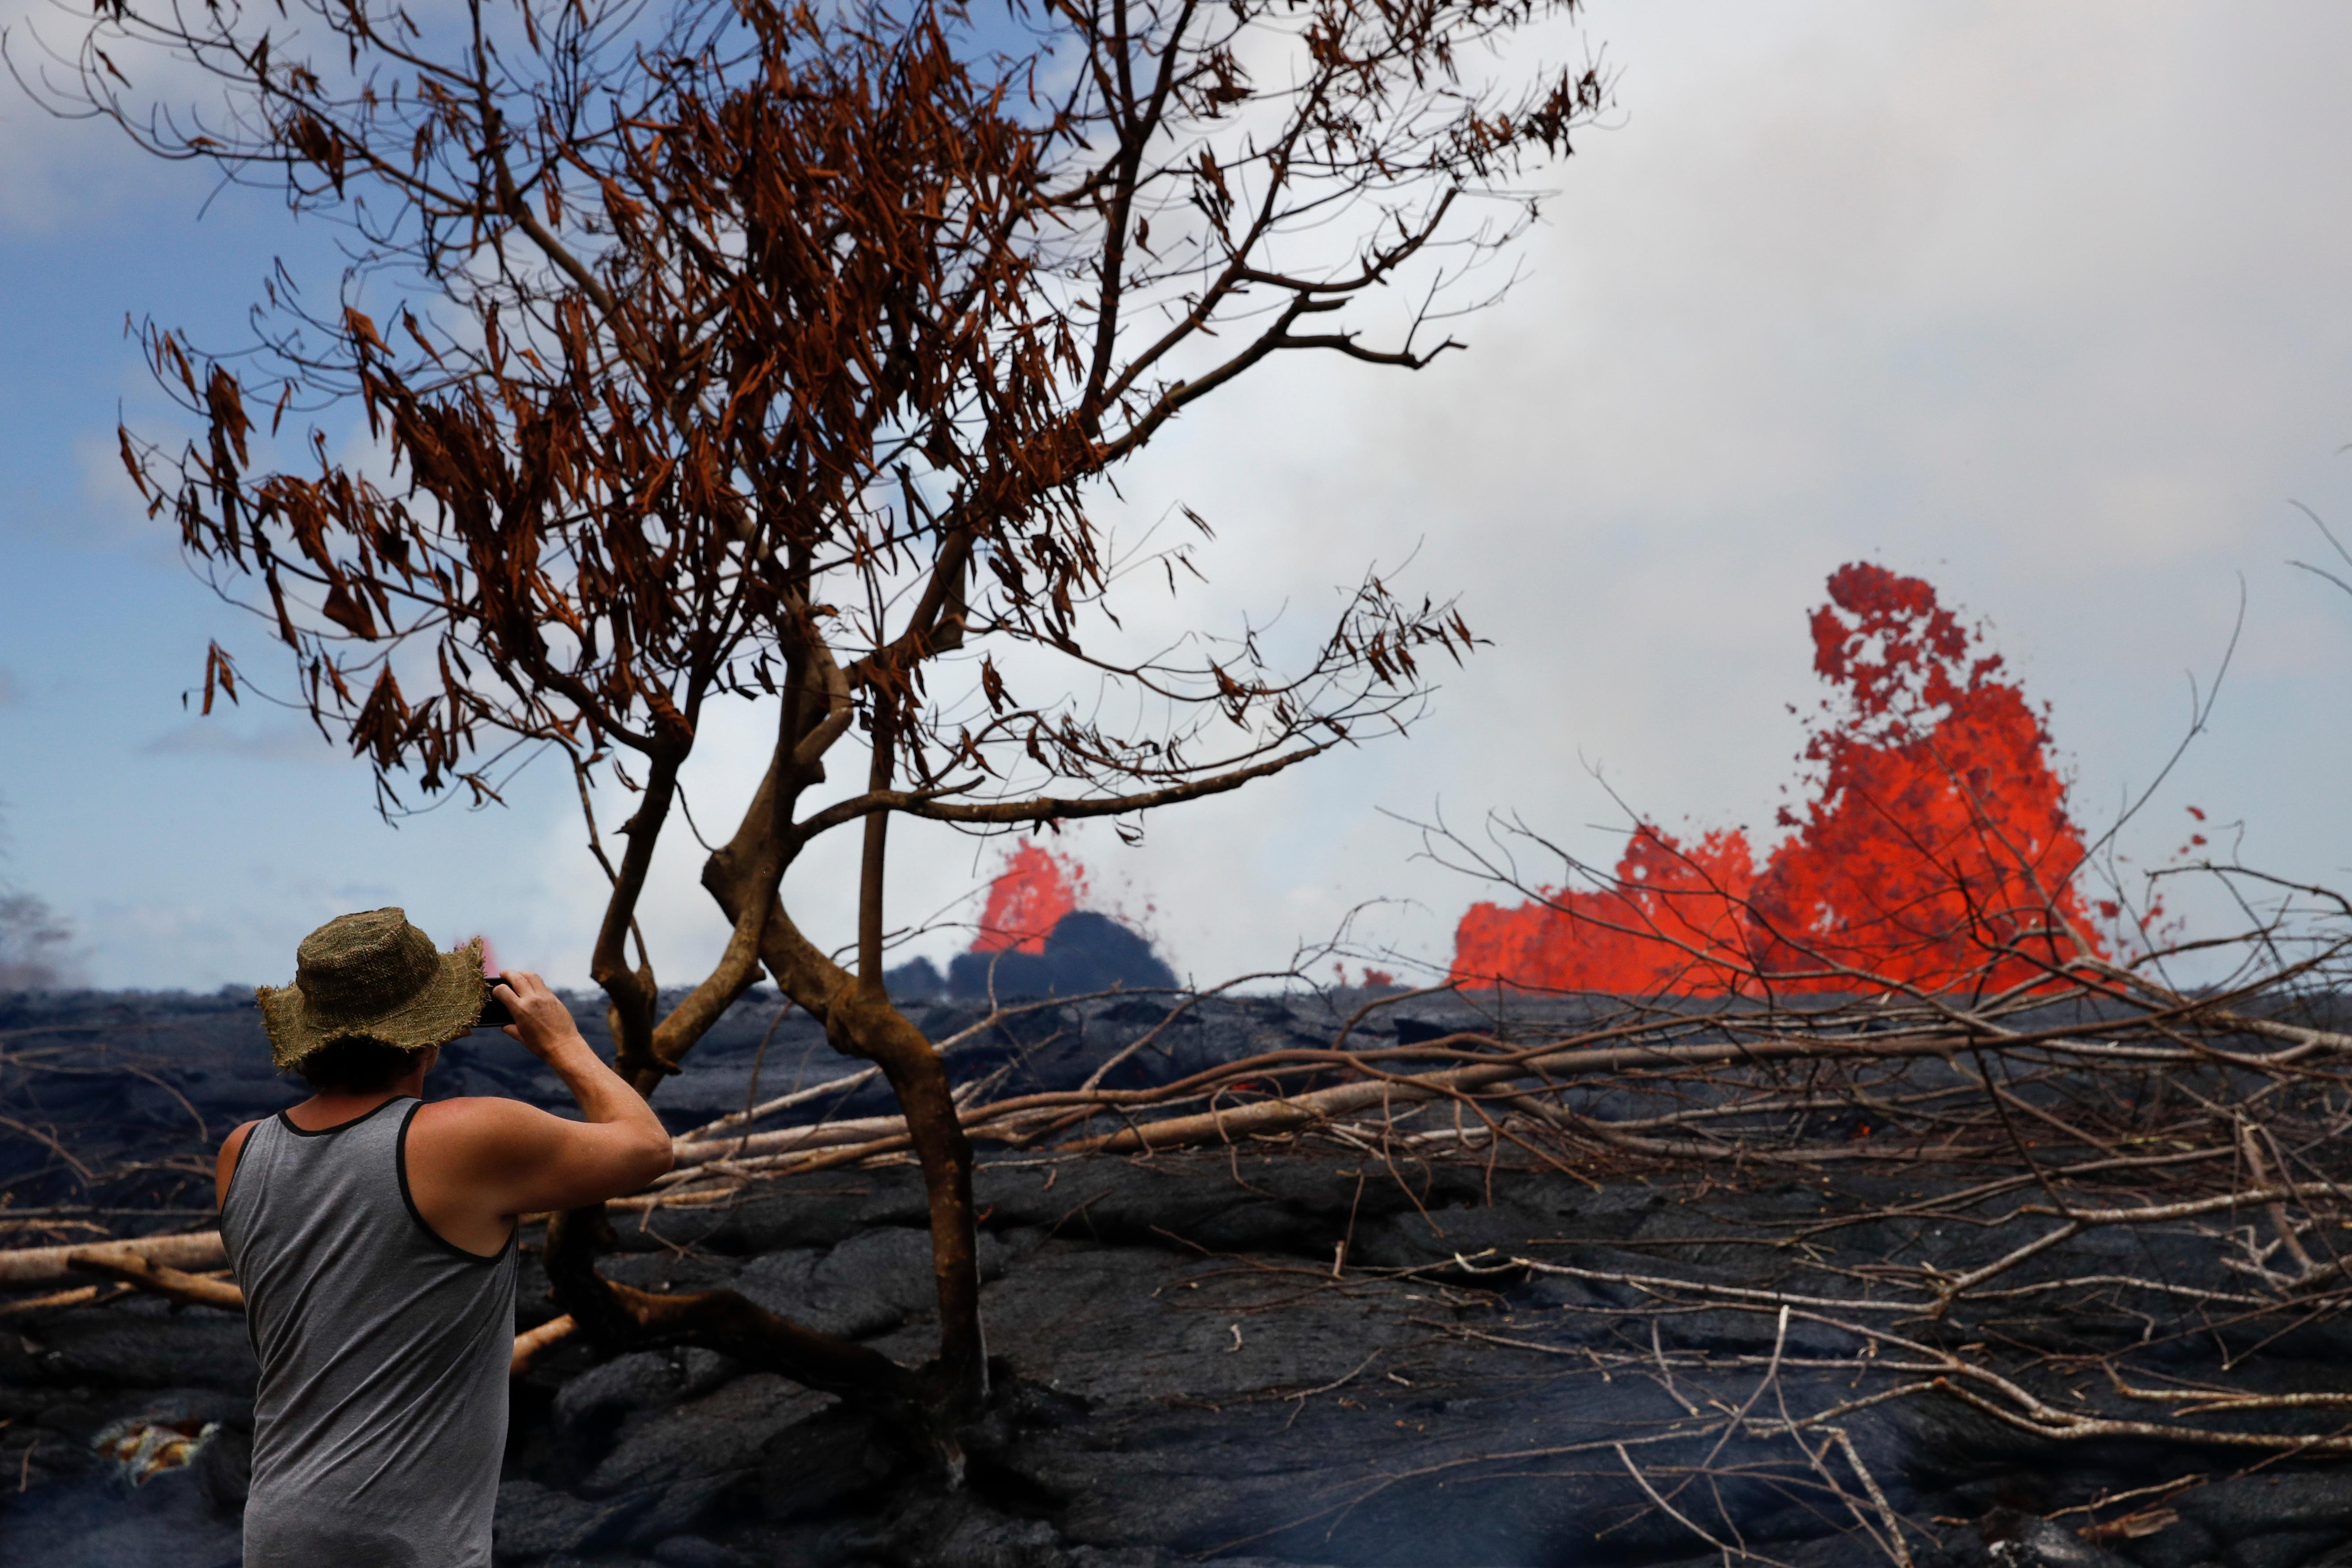 A resident takes photos as fissures spew lava in the Leilani Estates subdivision near Pahoa, Hawaii, Tuesday, May 22, 2018. Authorities were racing Tuesday to close off production wells at a geothermal plant threatened by a lava flow from Kilauea volcano on Hawaii's Big Island. (AP Photo/Jae C. Hong)